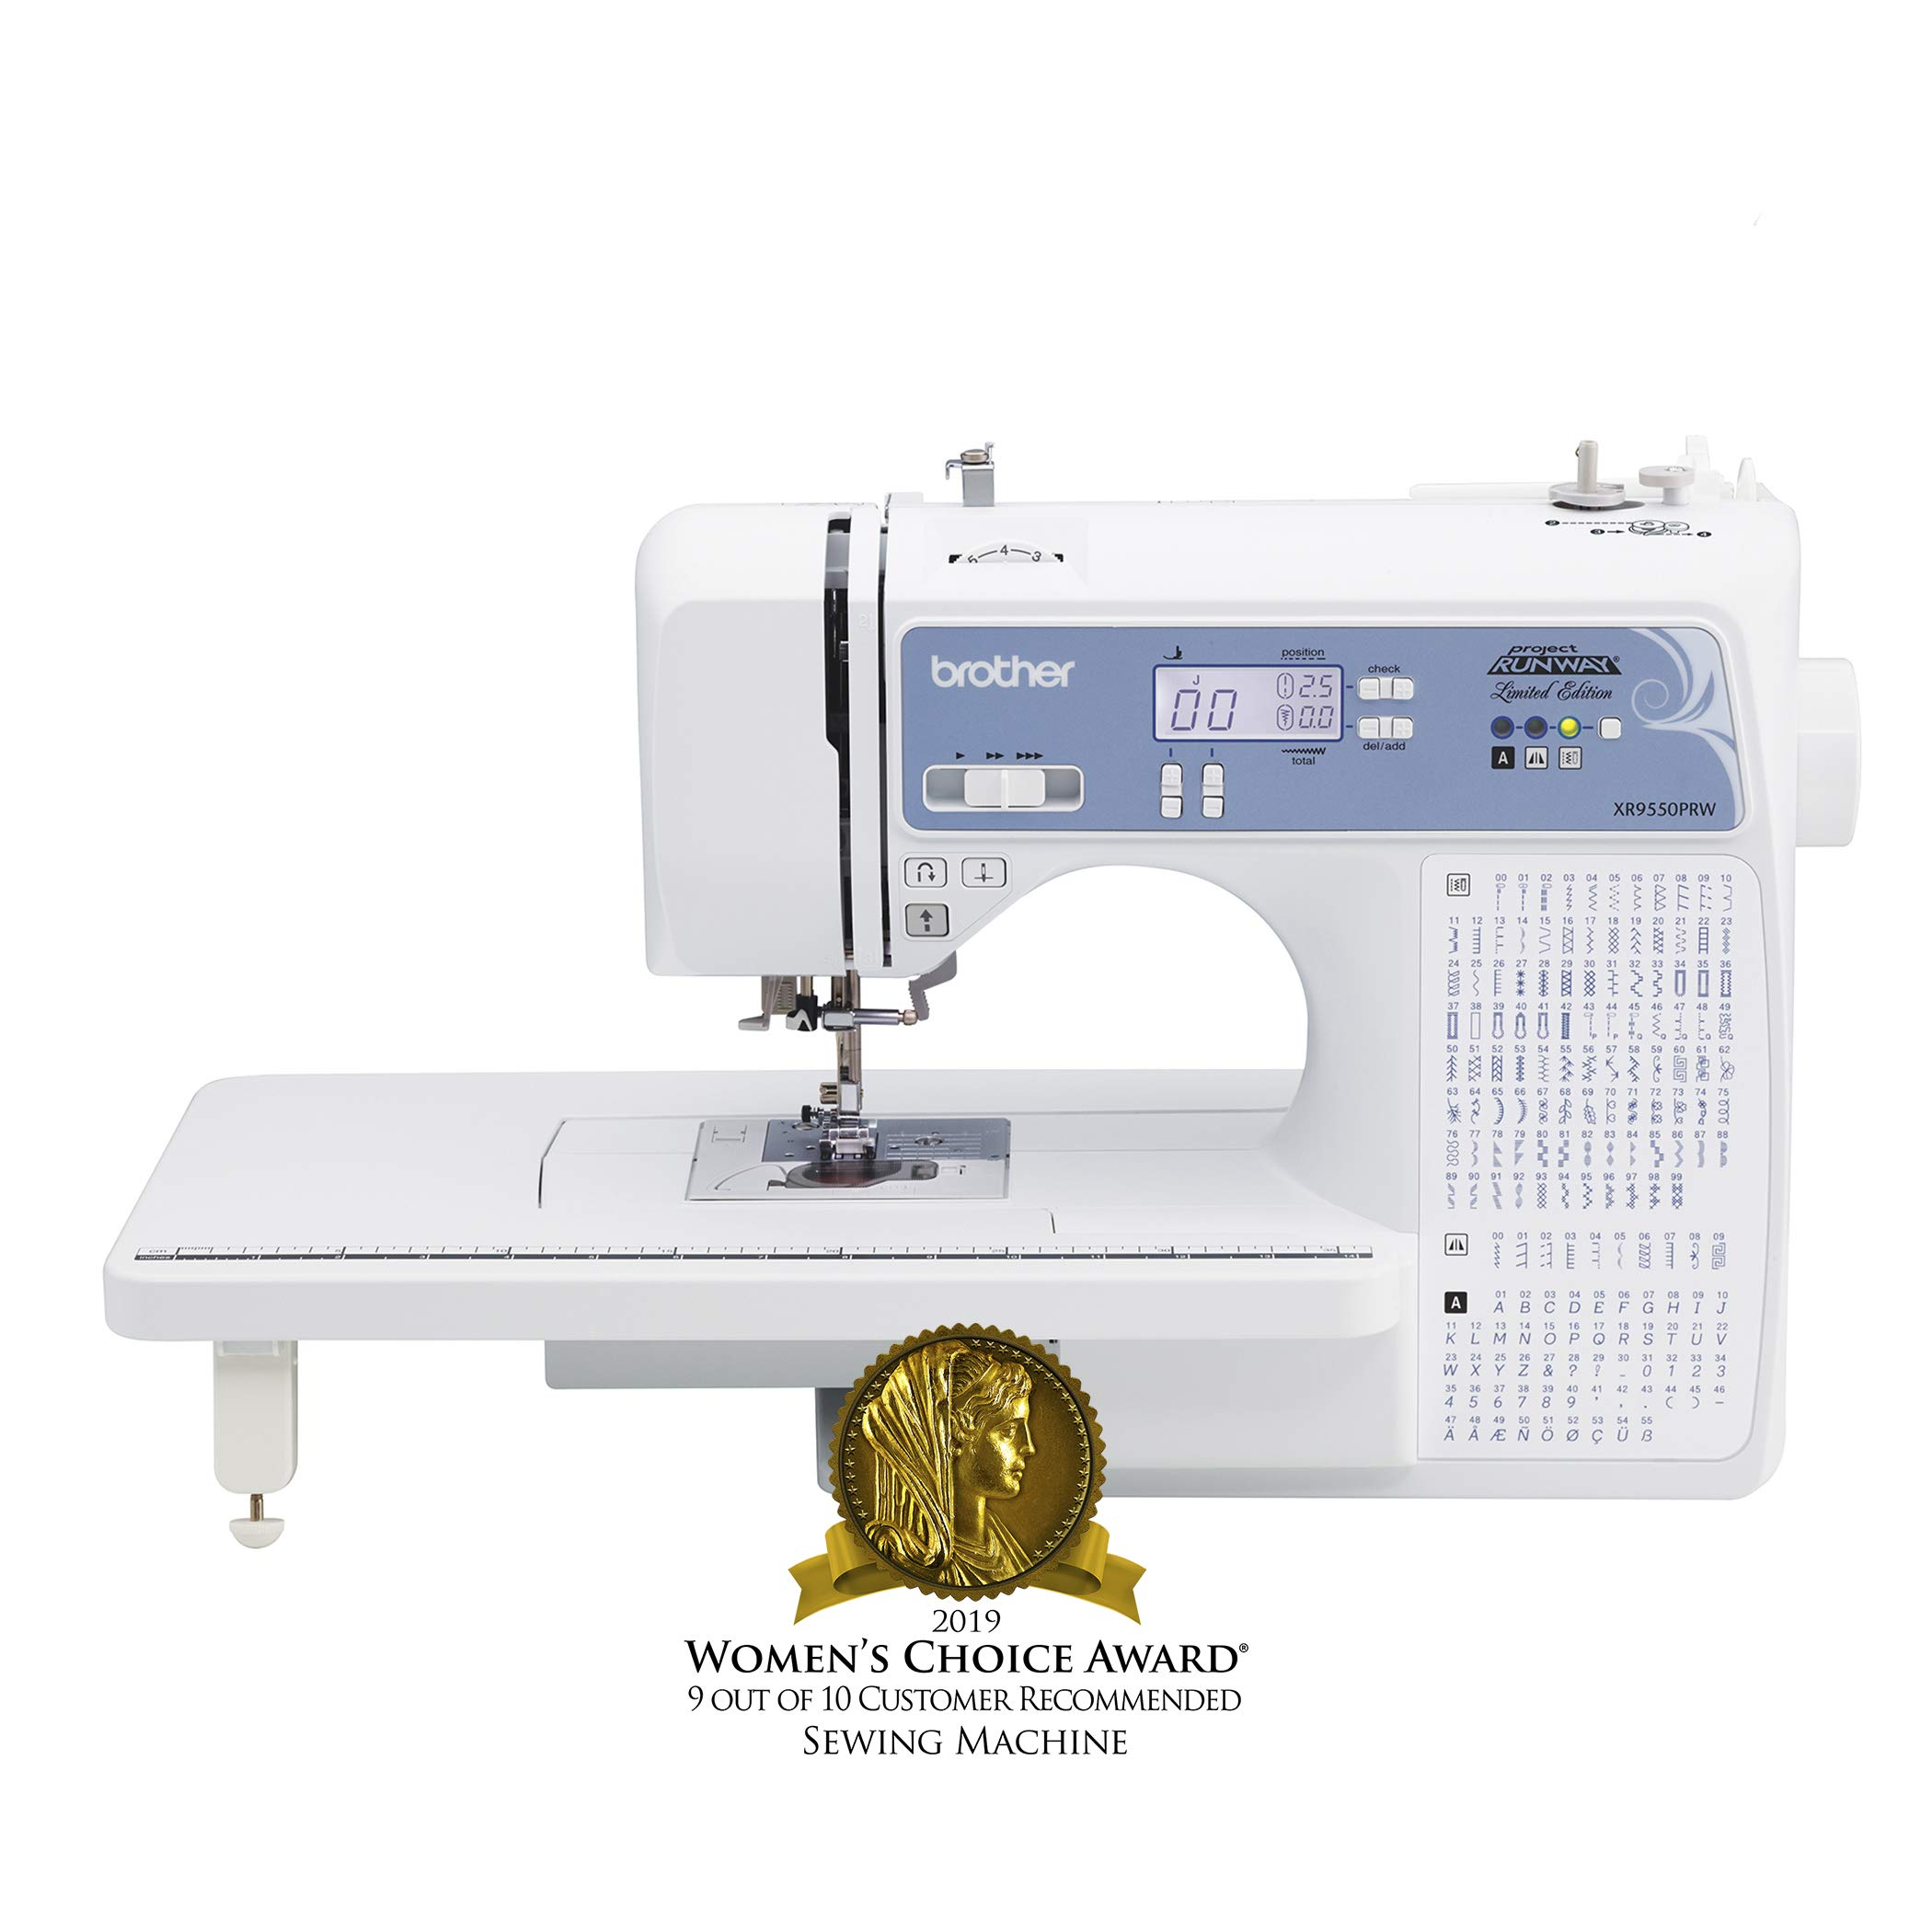 Brother Computerized Sewing Machine, XR9550PRW, Project Runway Limited Edition, 110 Built-in Utility, LCD Screen, Hard Case, White by Brother